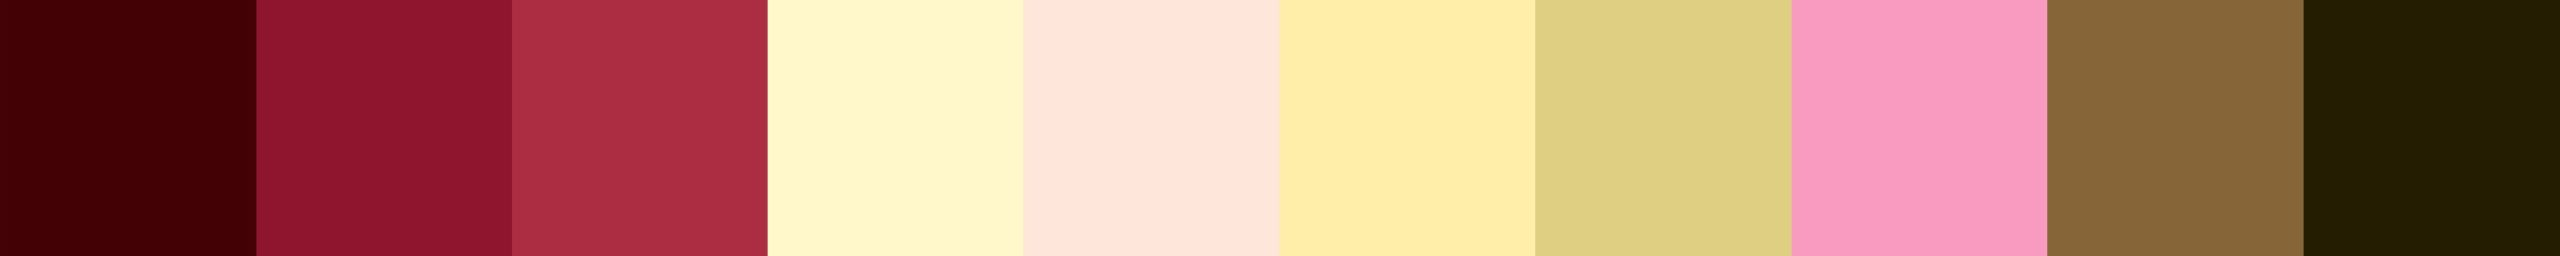 386 Vrederpia Color Palette